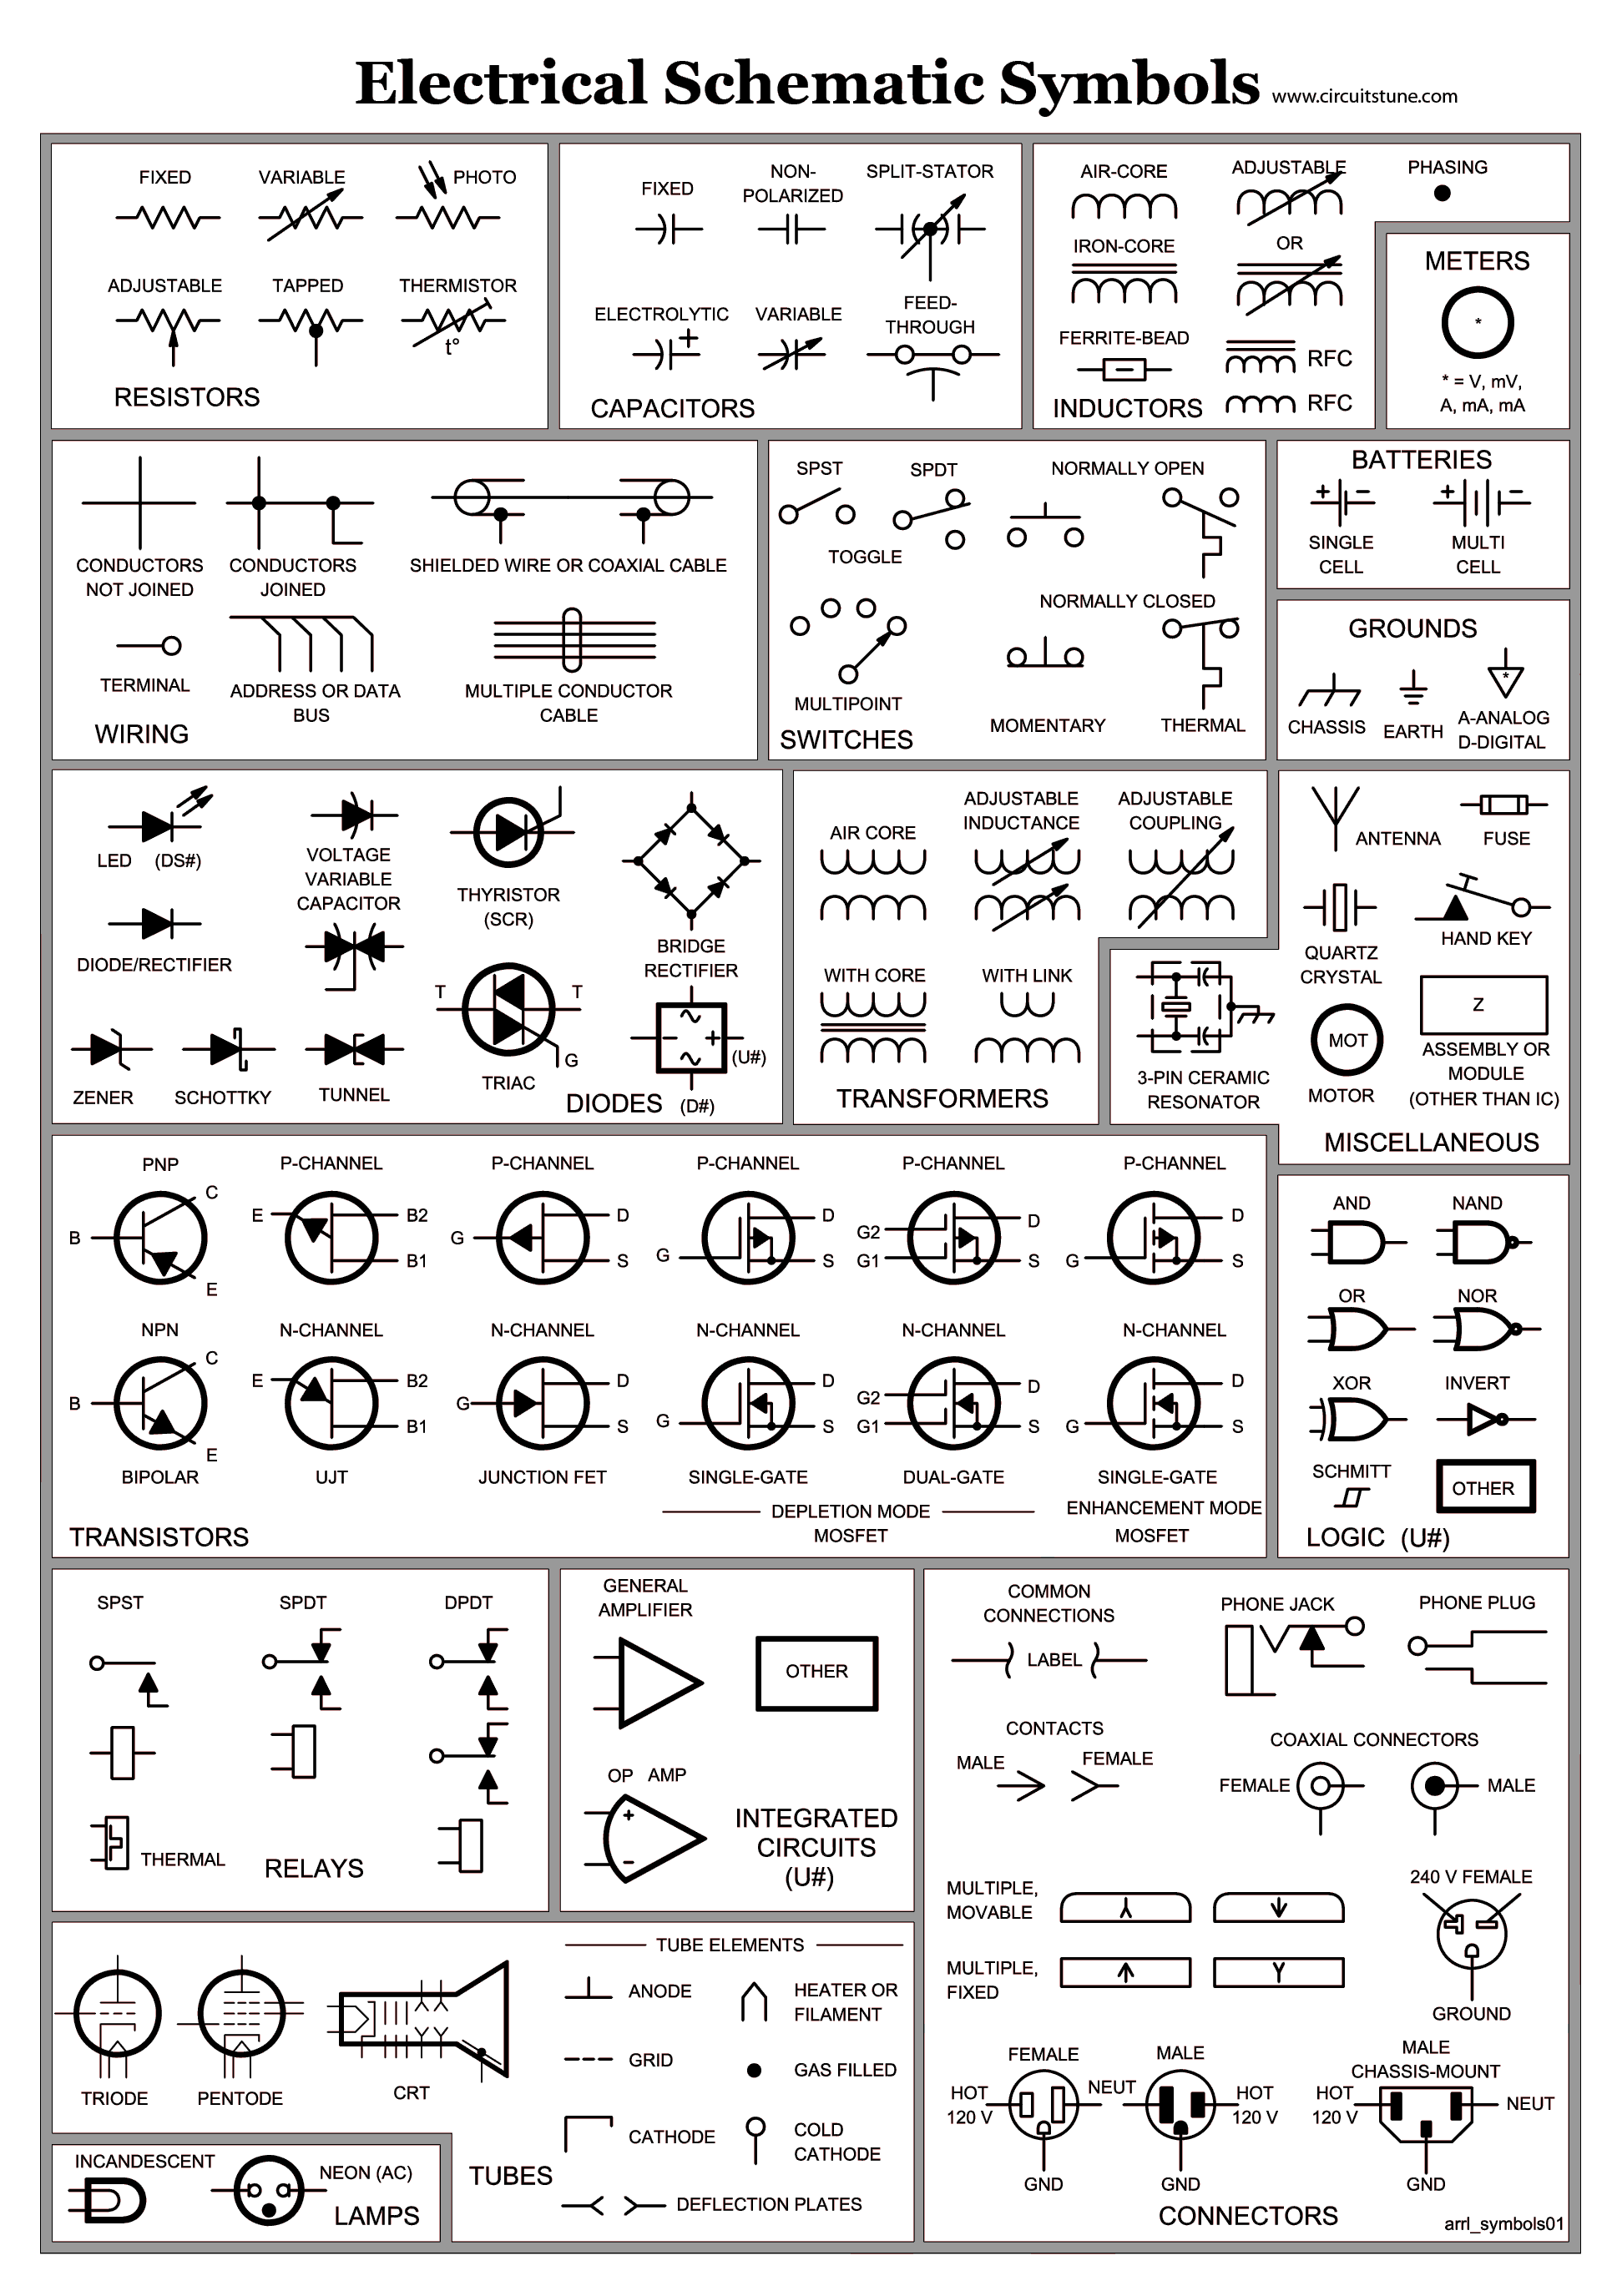 electrical schematic symbols wire diagram symbols automotive wiring rh pinterest com wiring diagram symbols pdf wiring diagram symbols chart